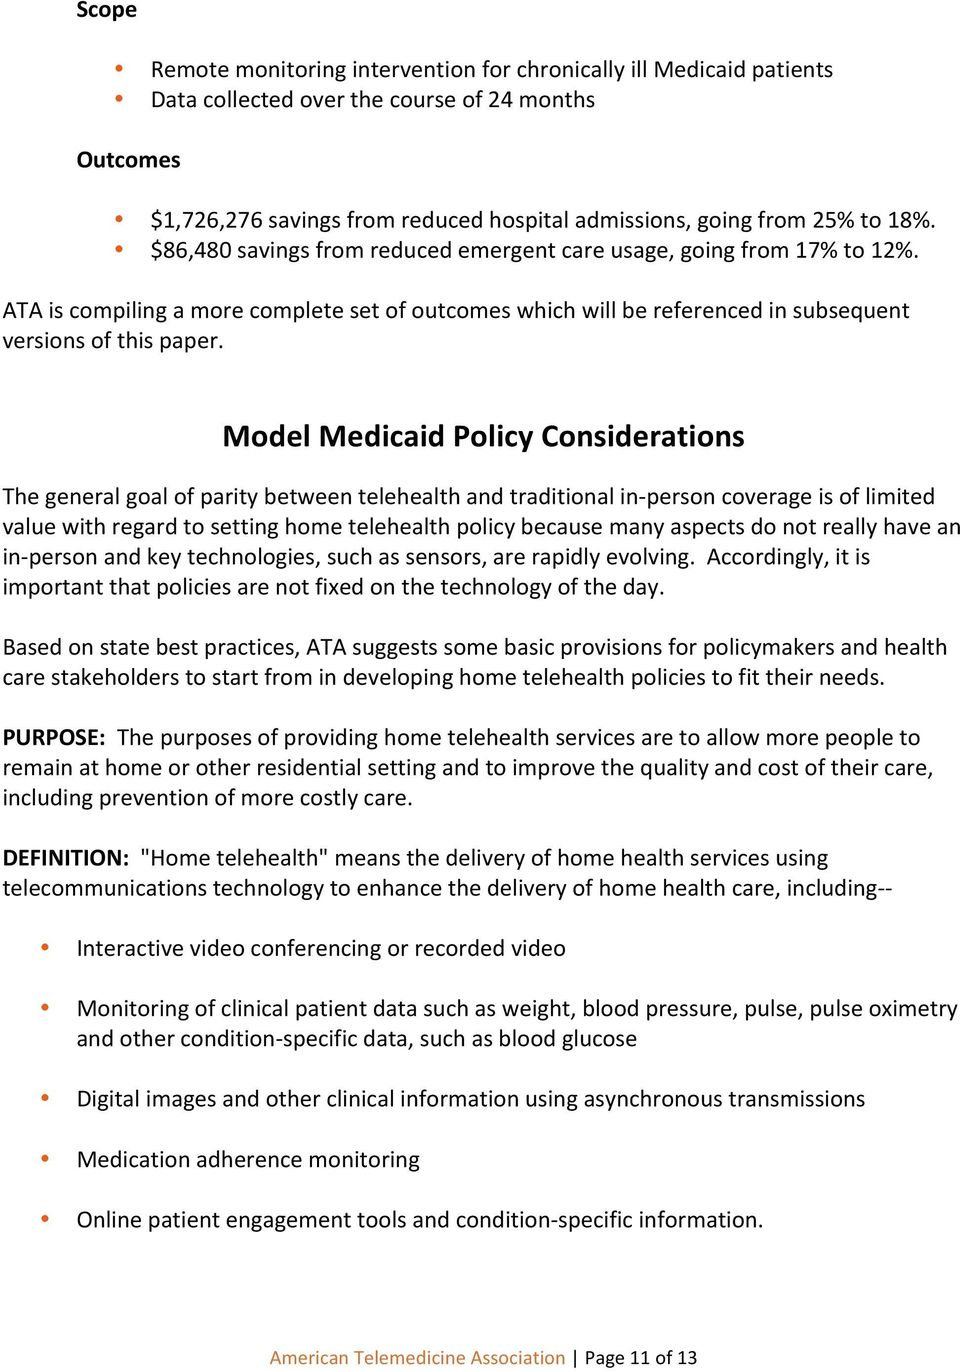 Model Medicaid Policy Considerations The general goal of parity between telehealth and traditional in- person coverage is of limited value with regard to setting home telehealth policy because many